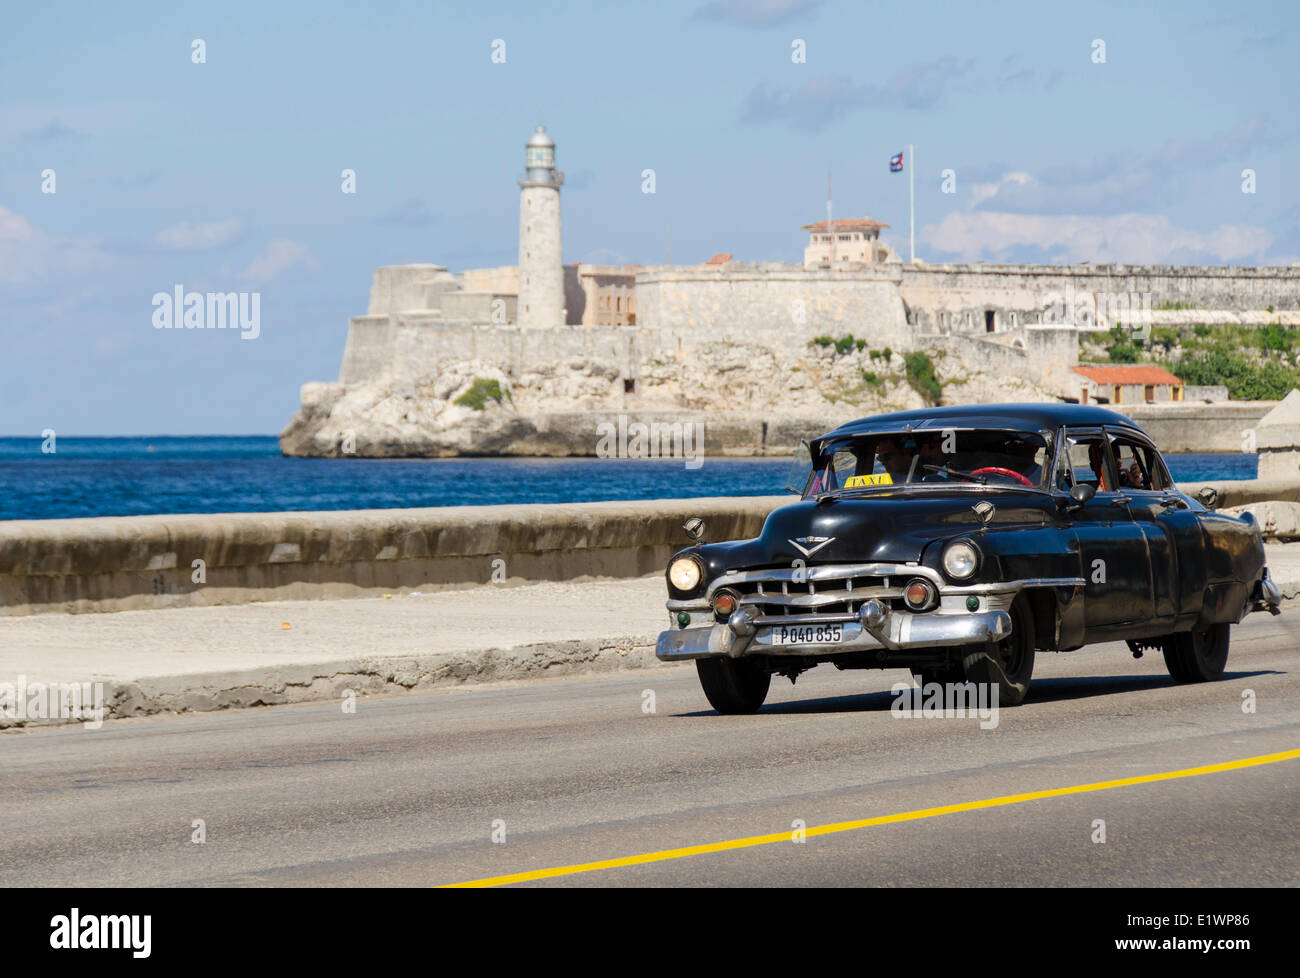 Vintage american cars alomg the Malecon, behind is Morro Castle, a picturesque fortress guarding the entrance to Stock Photo